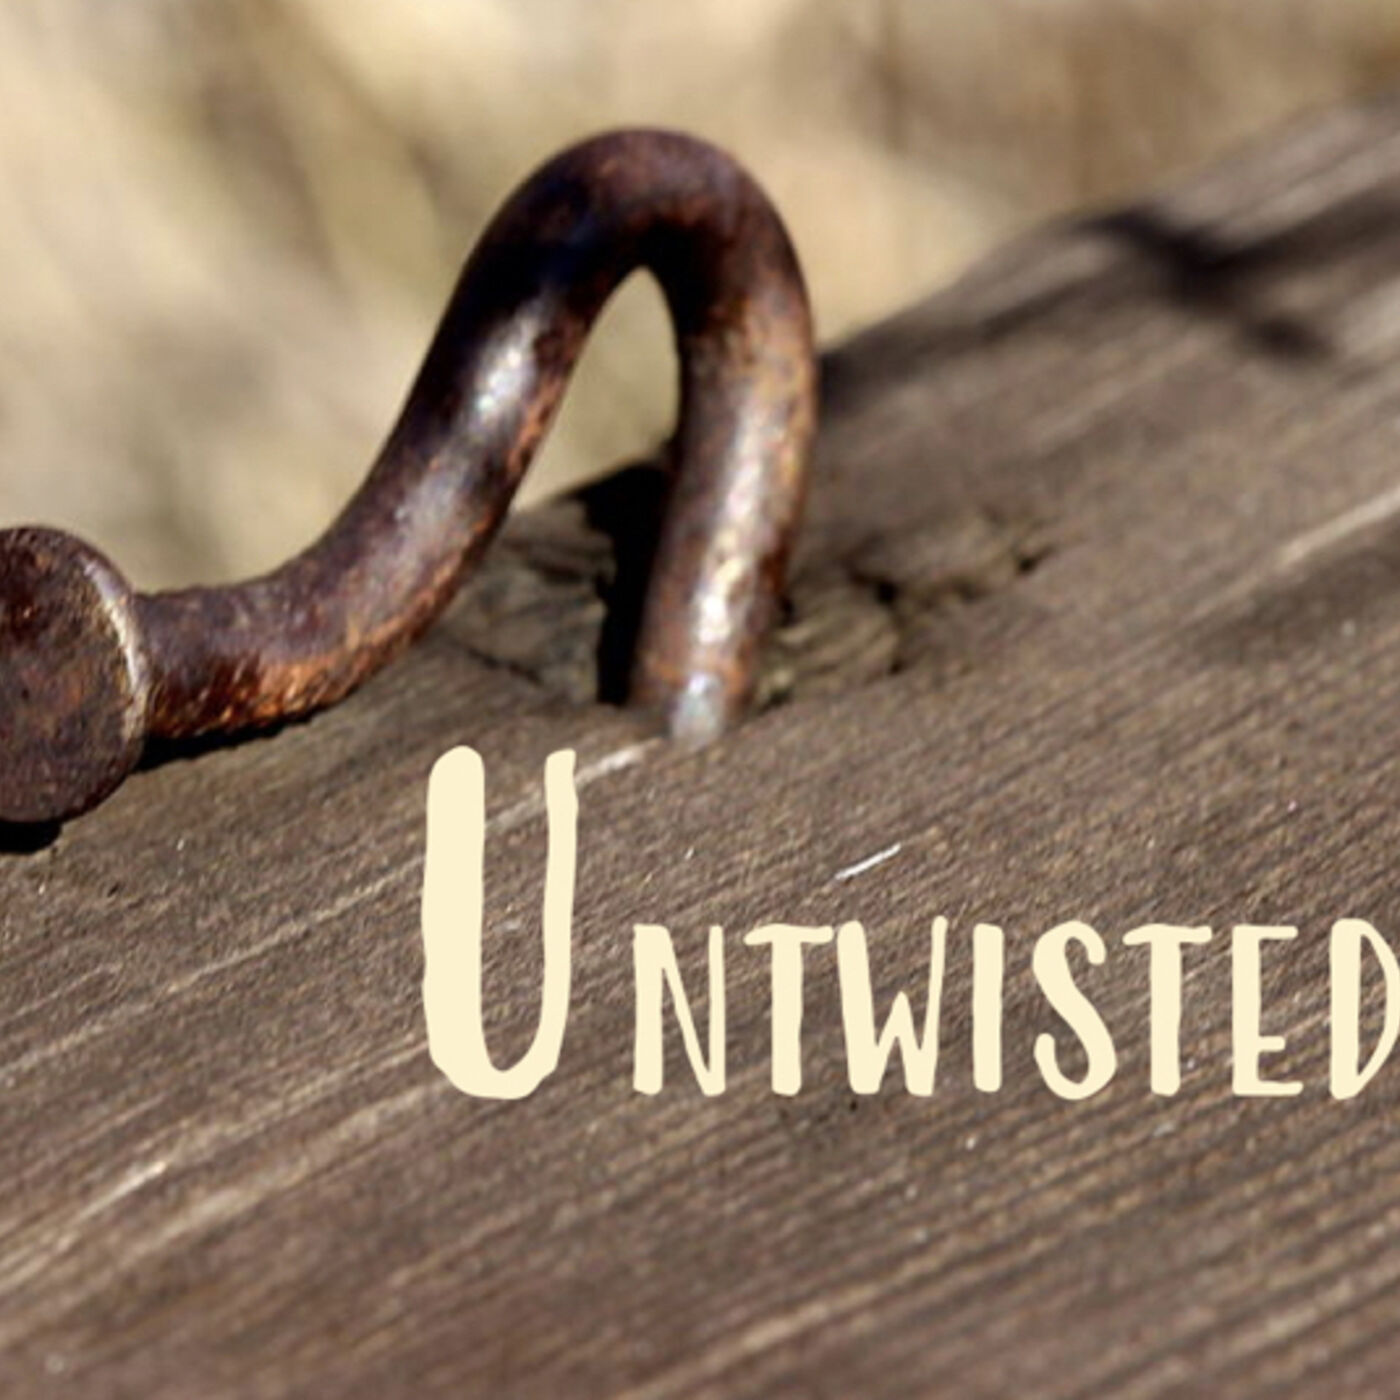 Untwisted: Pieces to Peace